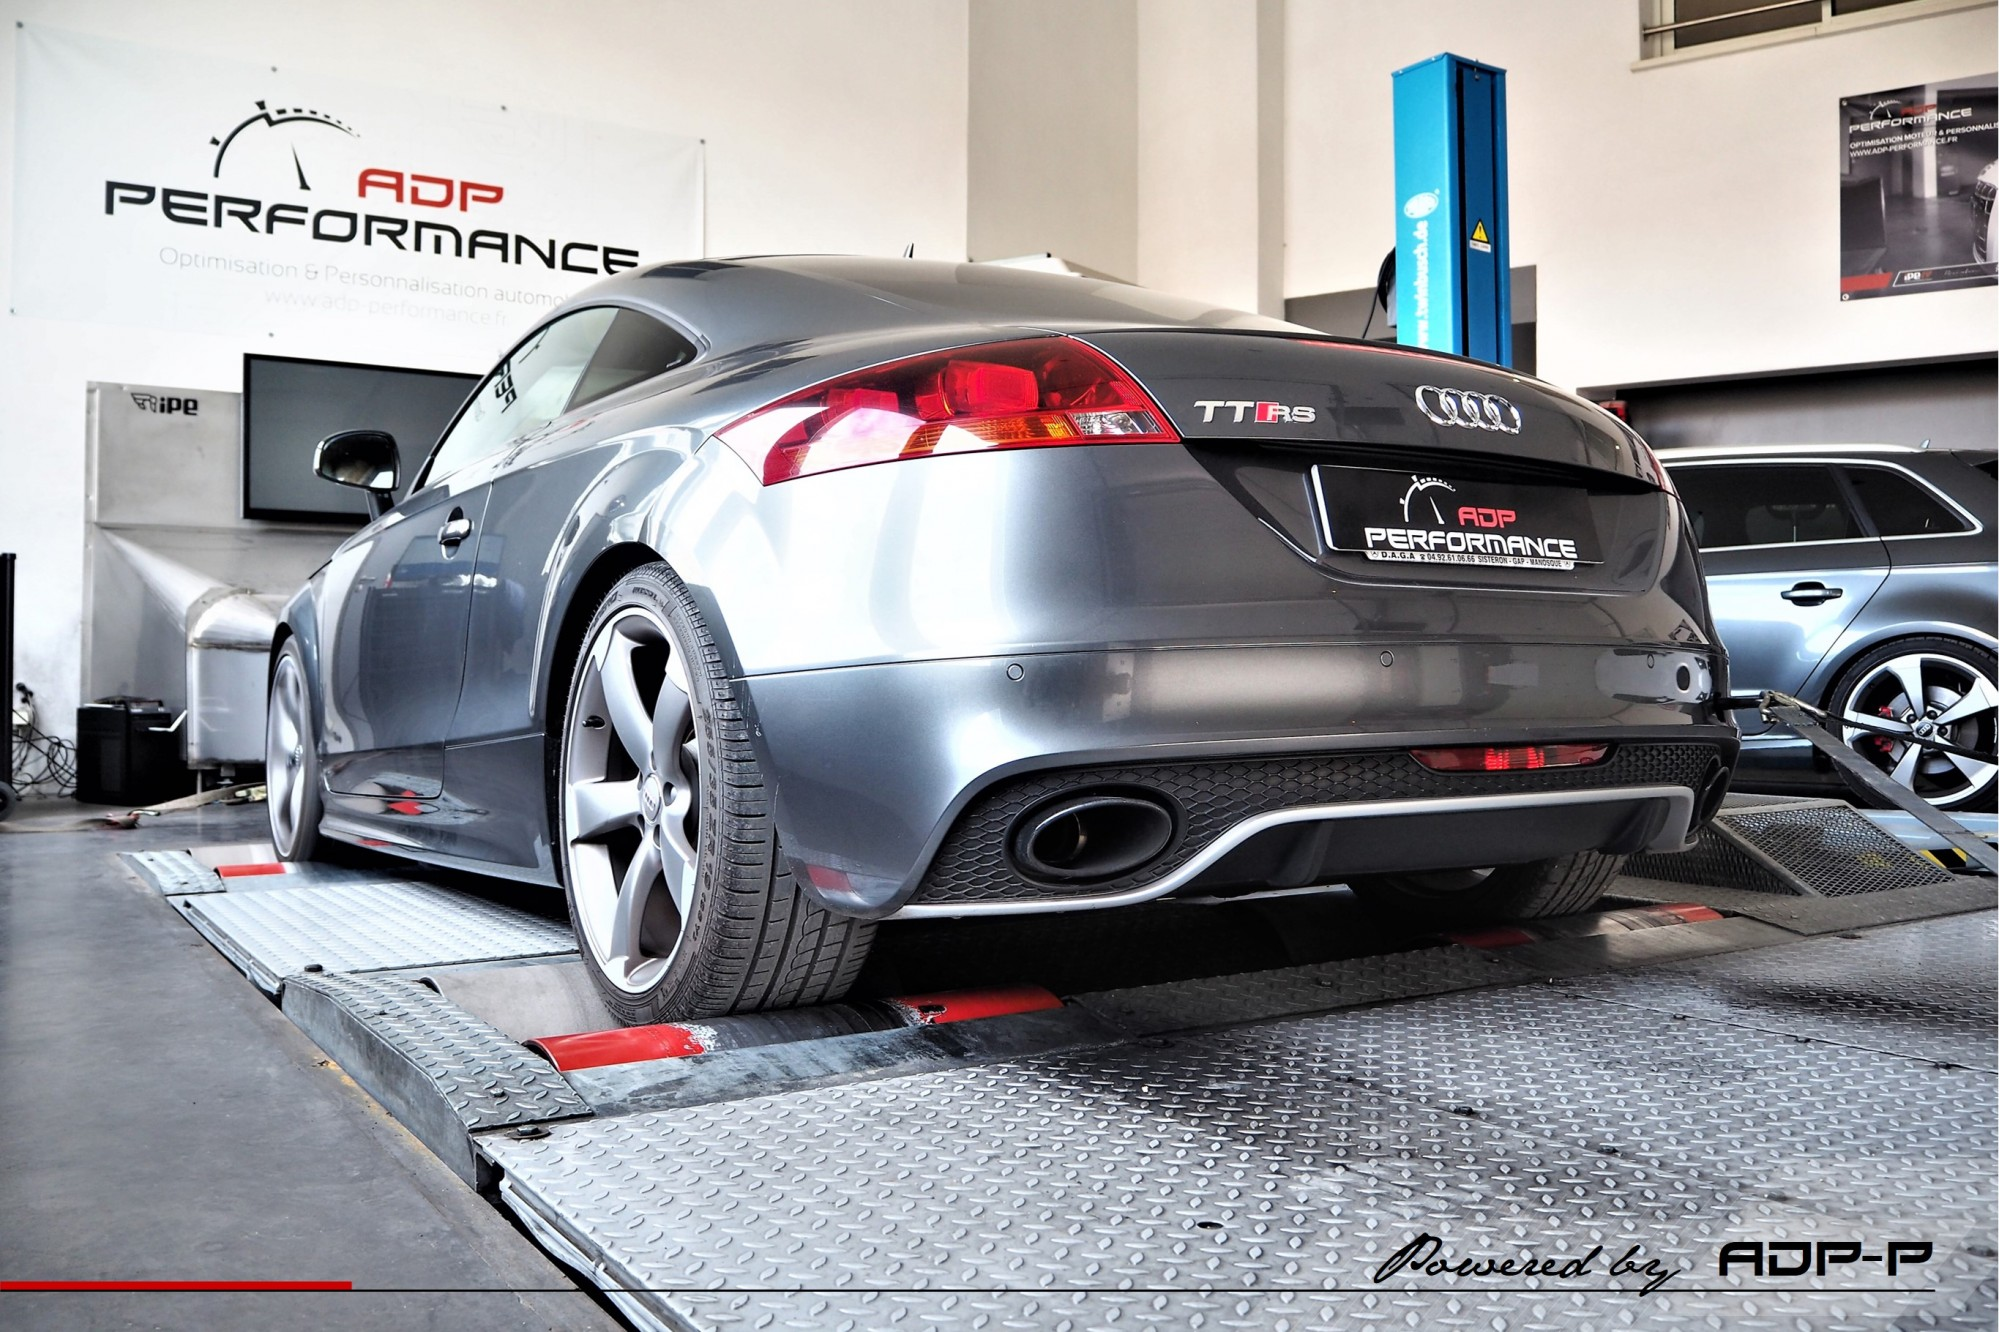 pr paration audi tt rs 2 5 tfsi salon de provence. Black Bedroom Furniture Sets. Home Design Ideas